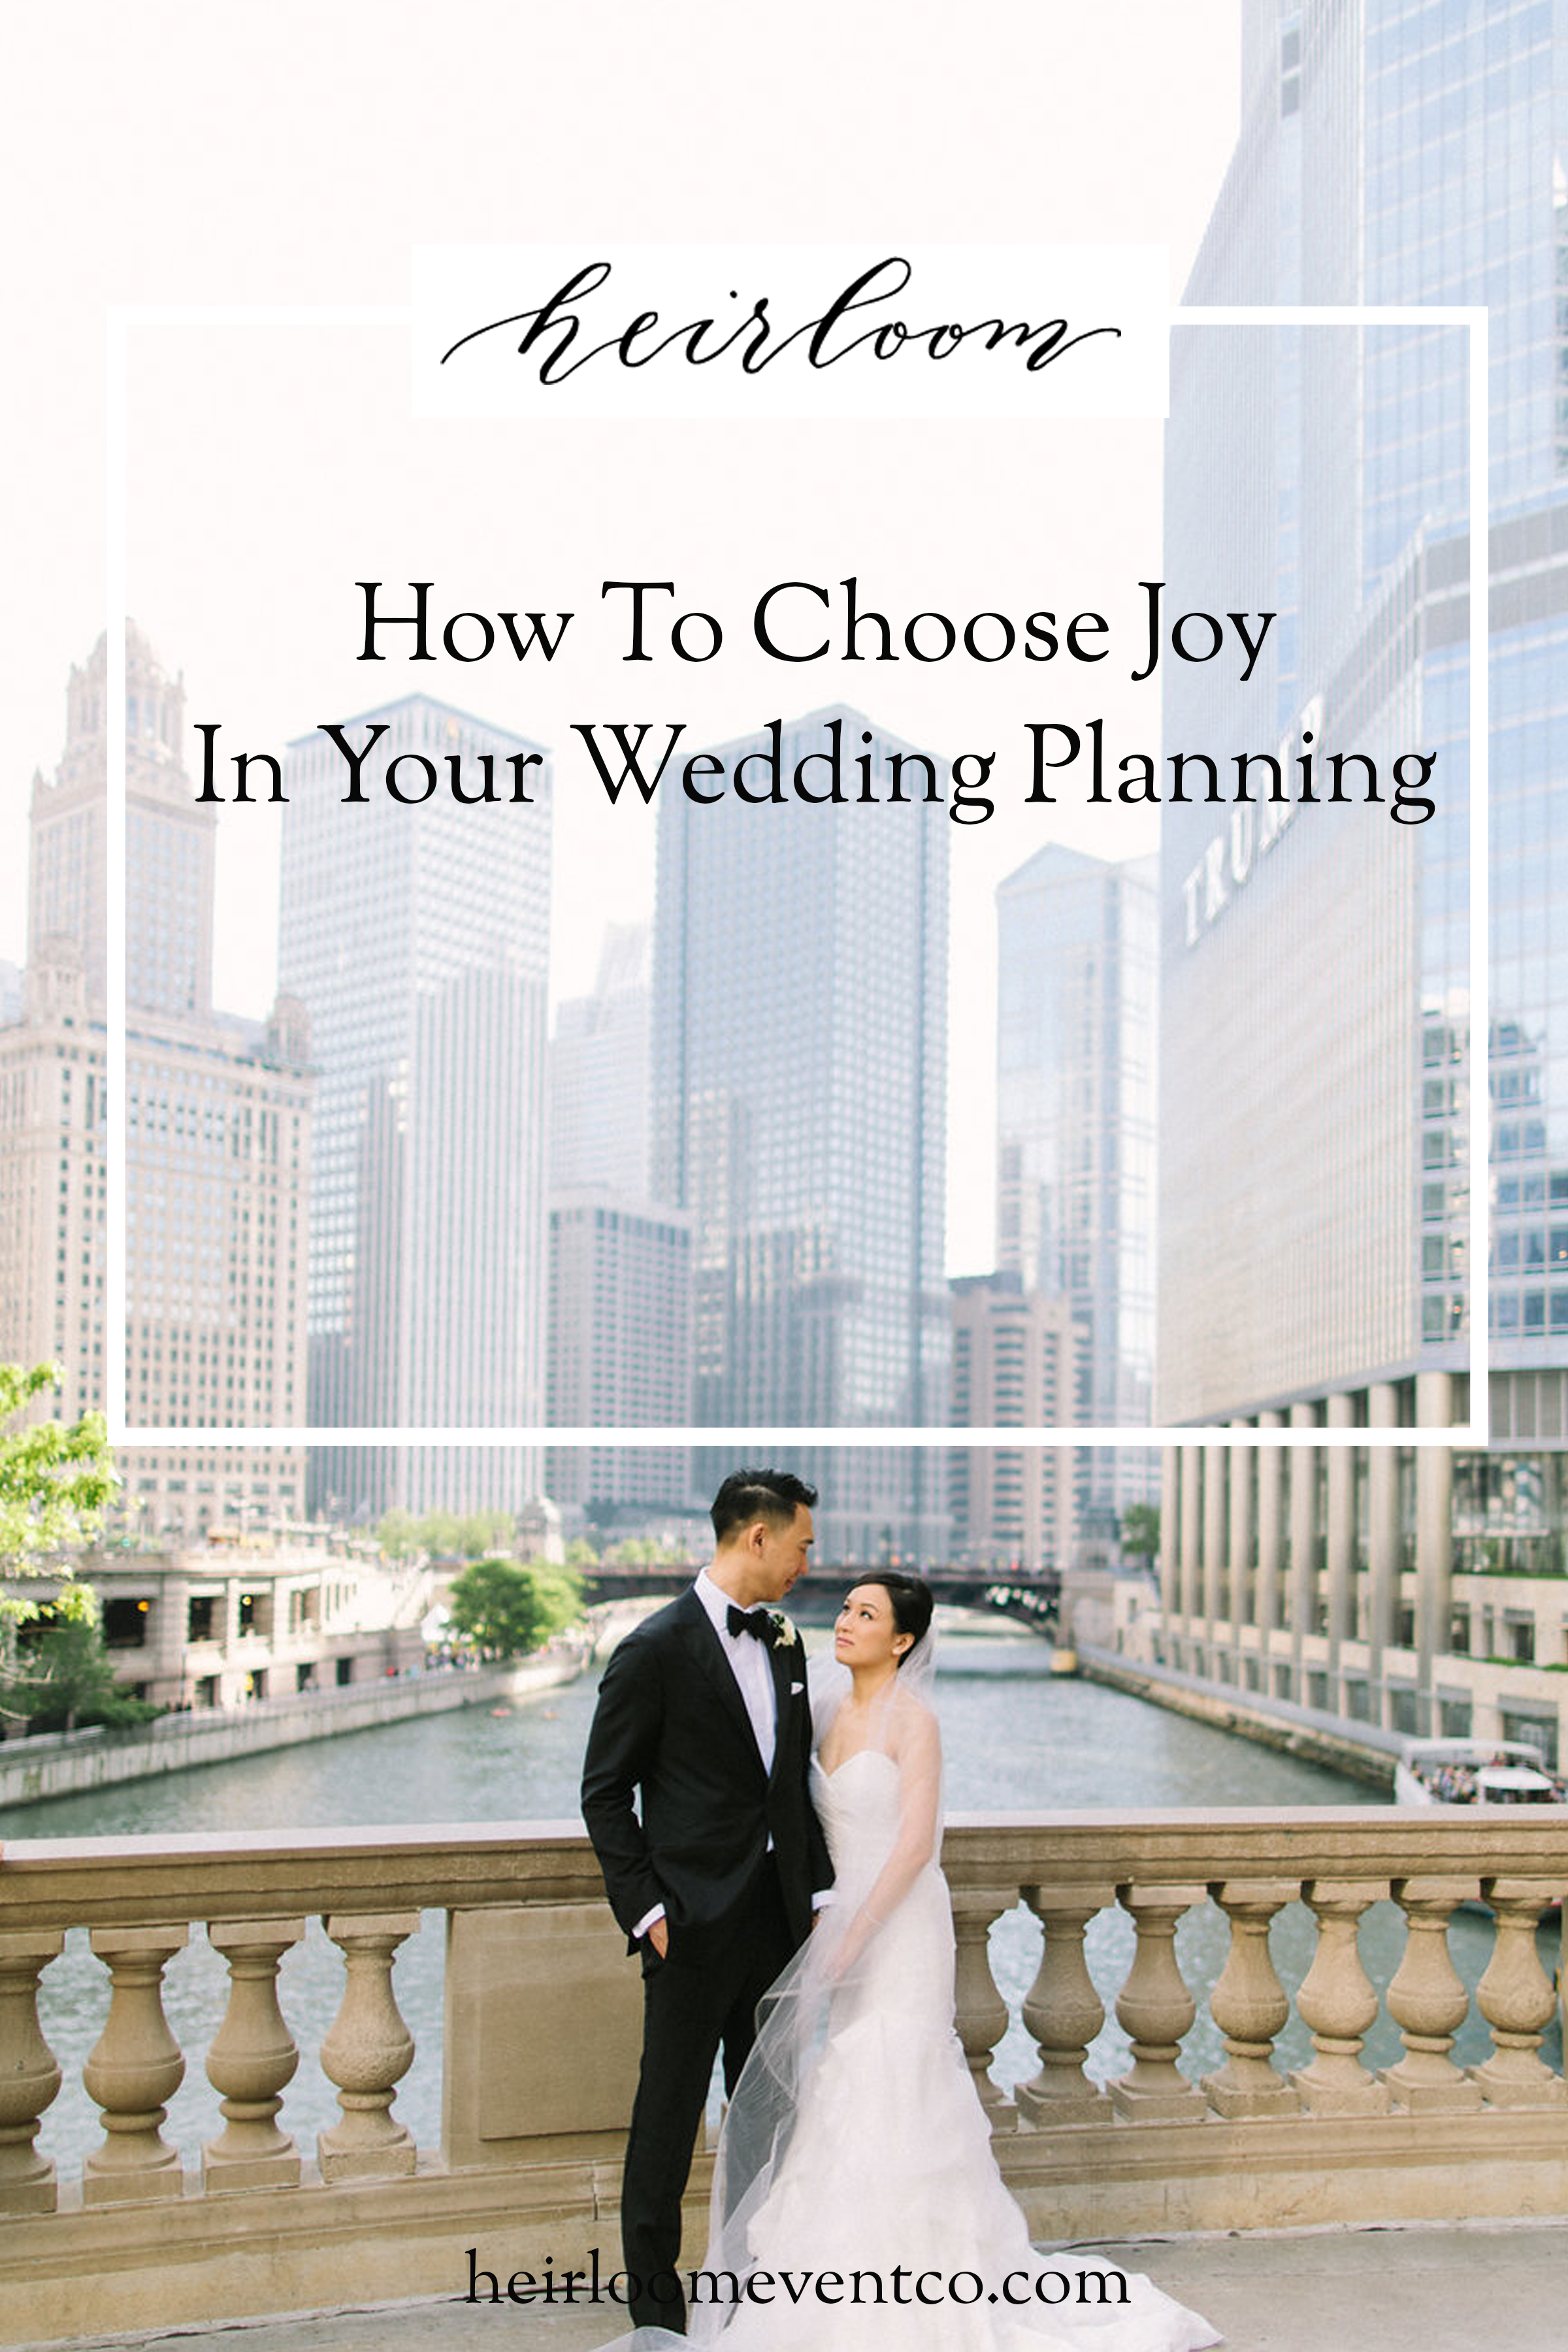 Heirloom Event Co. | How To Choose Joy In Your Wedding Planning